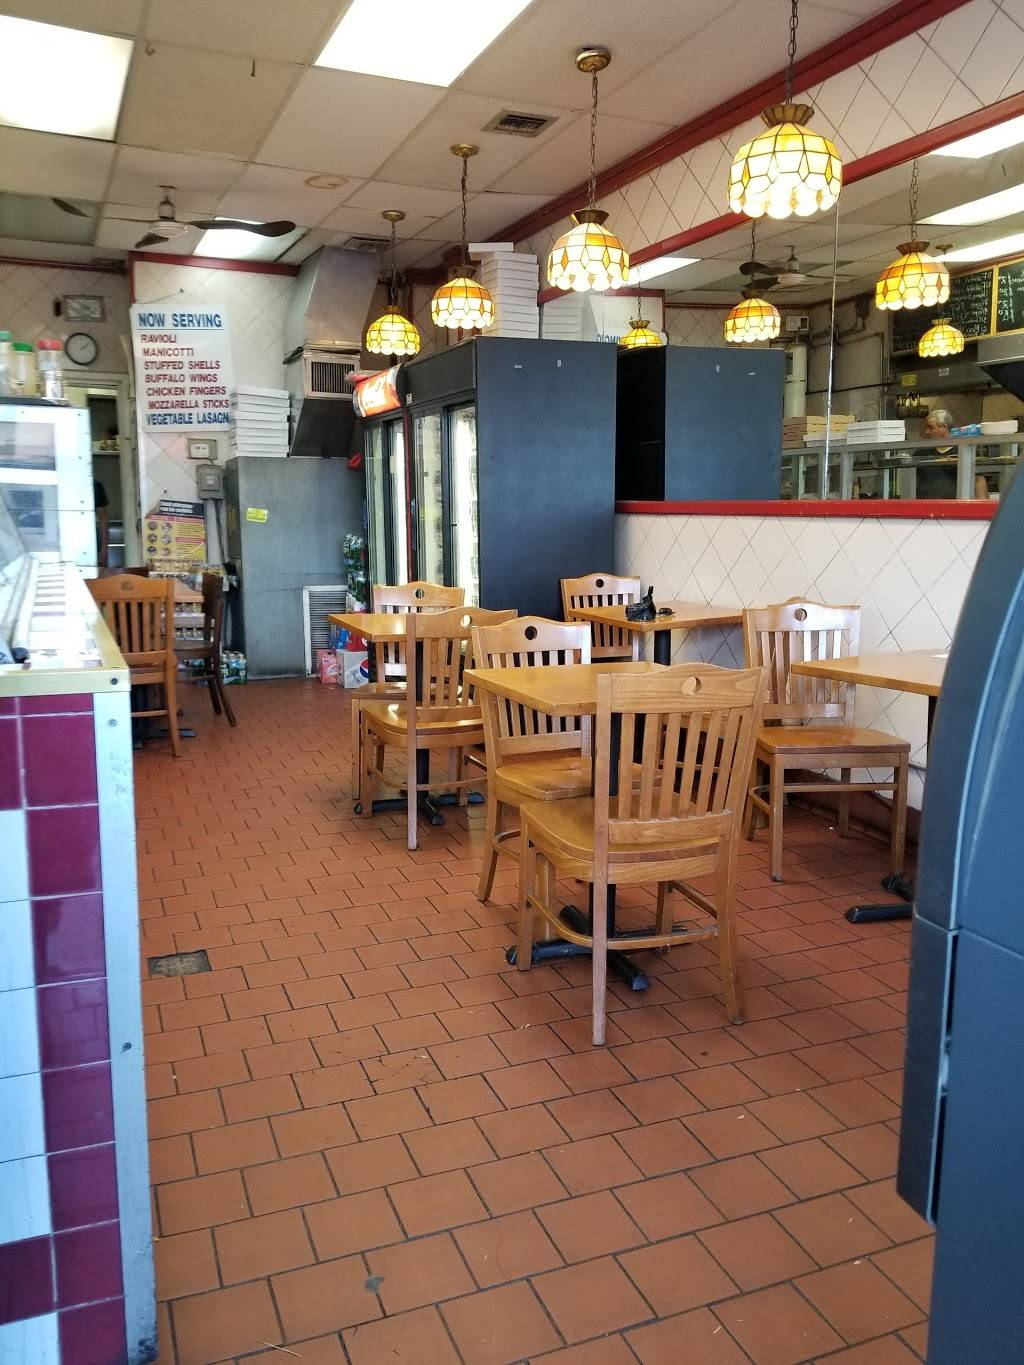 Liberty Pizza   meal delivery   482 Myrtle Ave, Brooklyn, NY 11205, USA   7187890600 OR +1 718-789-0600